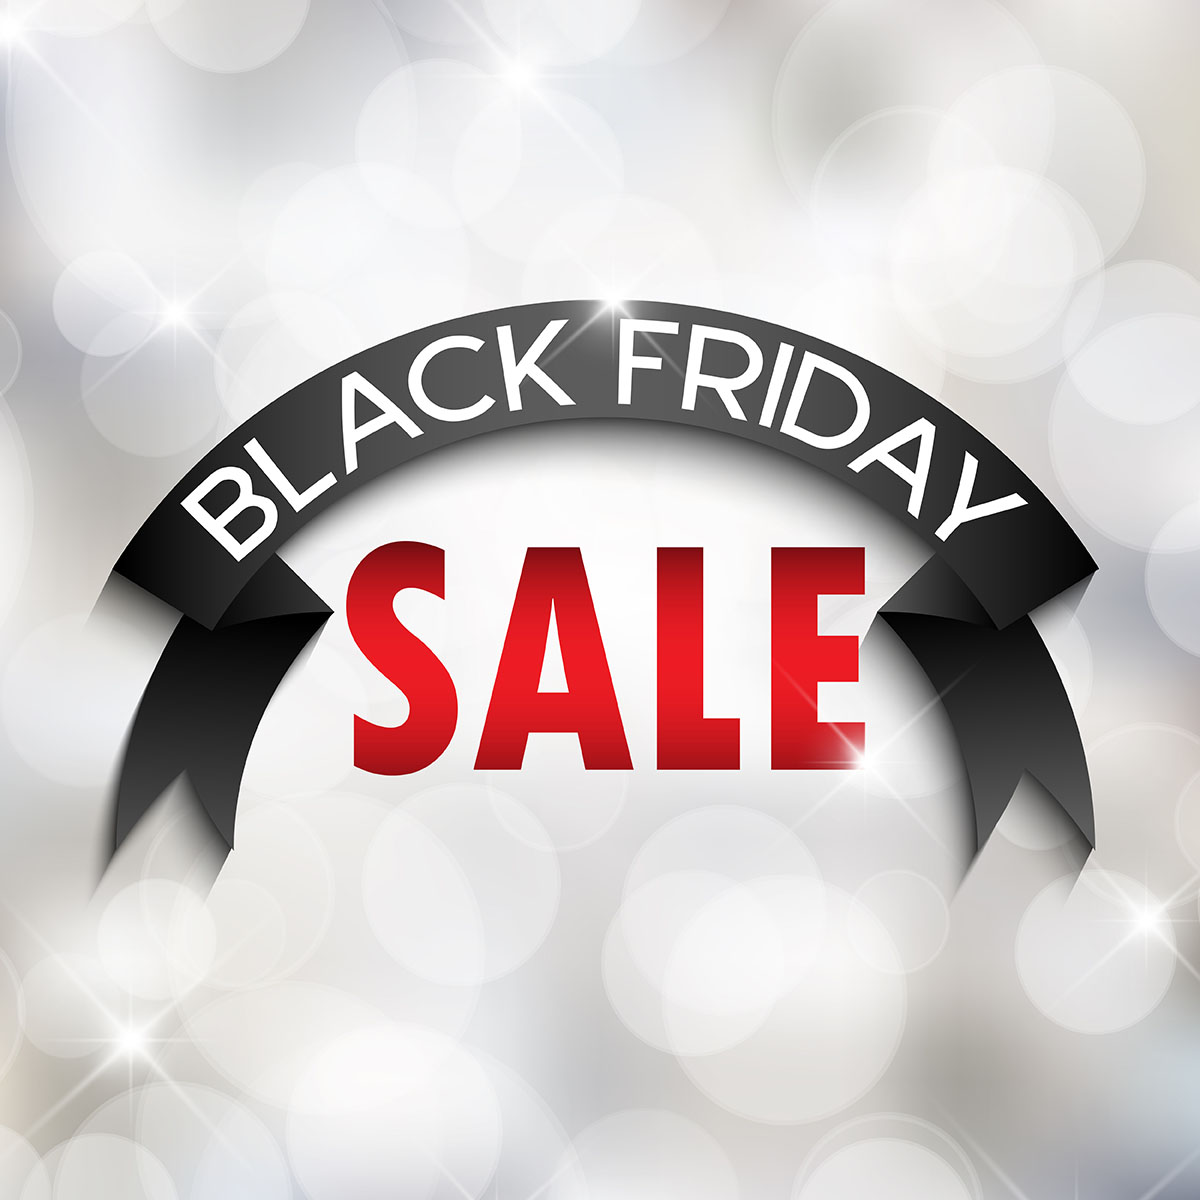 Friday Sale Black Friday Sale Background Download Free Vector Art